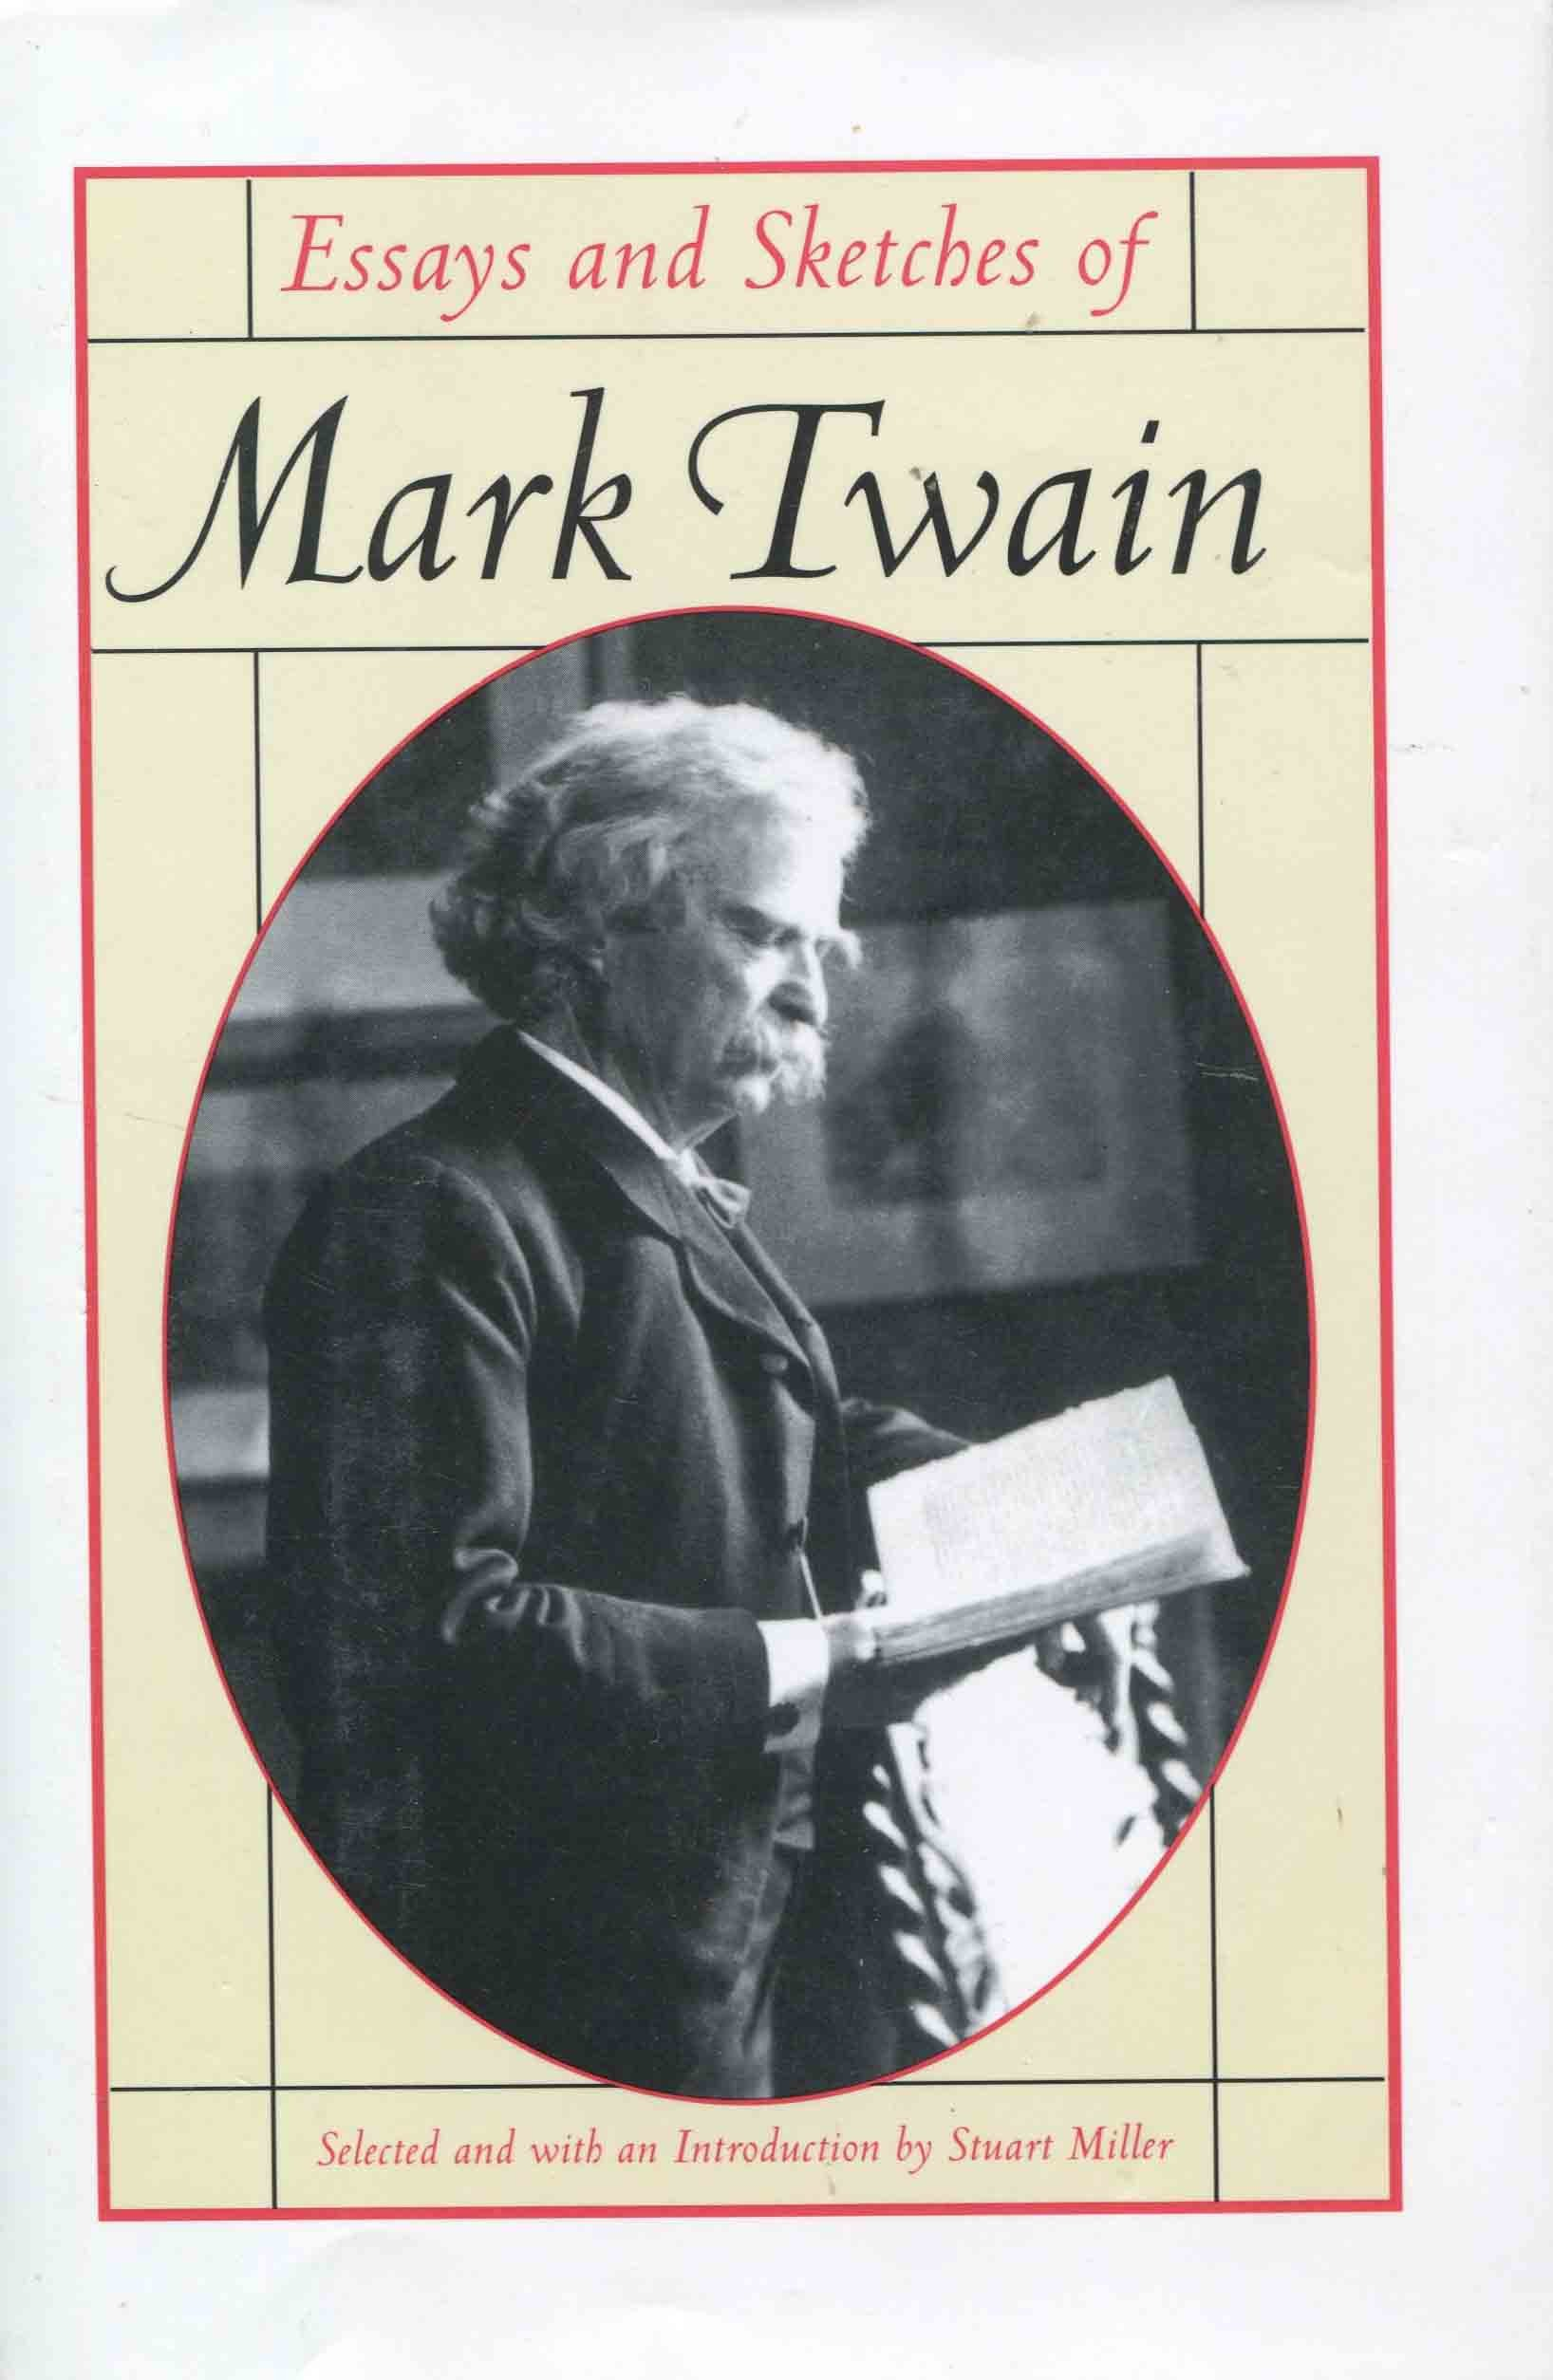 018 Mark Twain Essays 71ujezudo4l Essay Surprising Collected Tales Sketches Speeches And On Writing Post Civil War Full